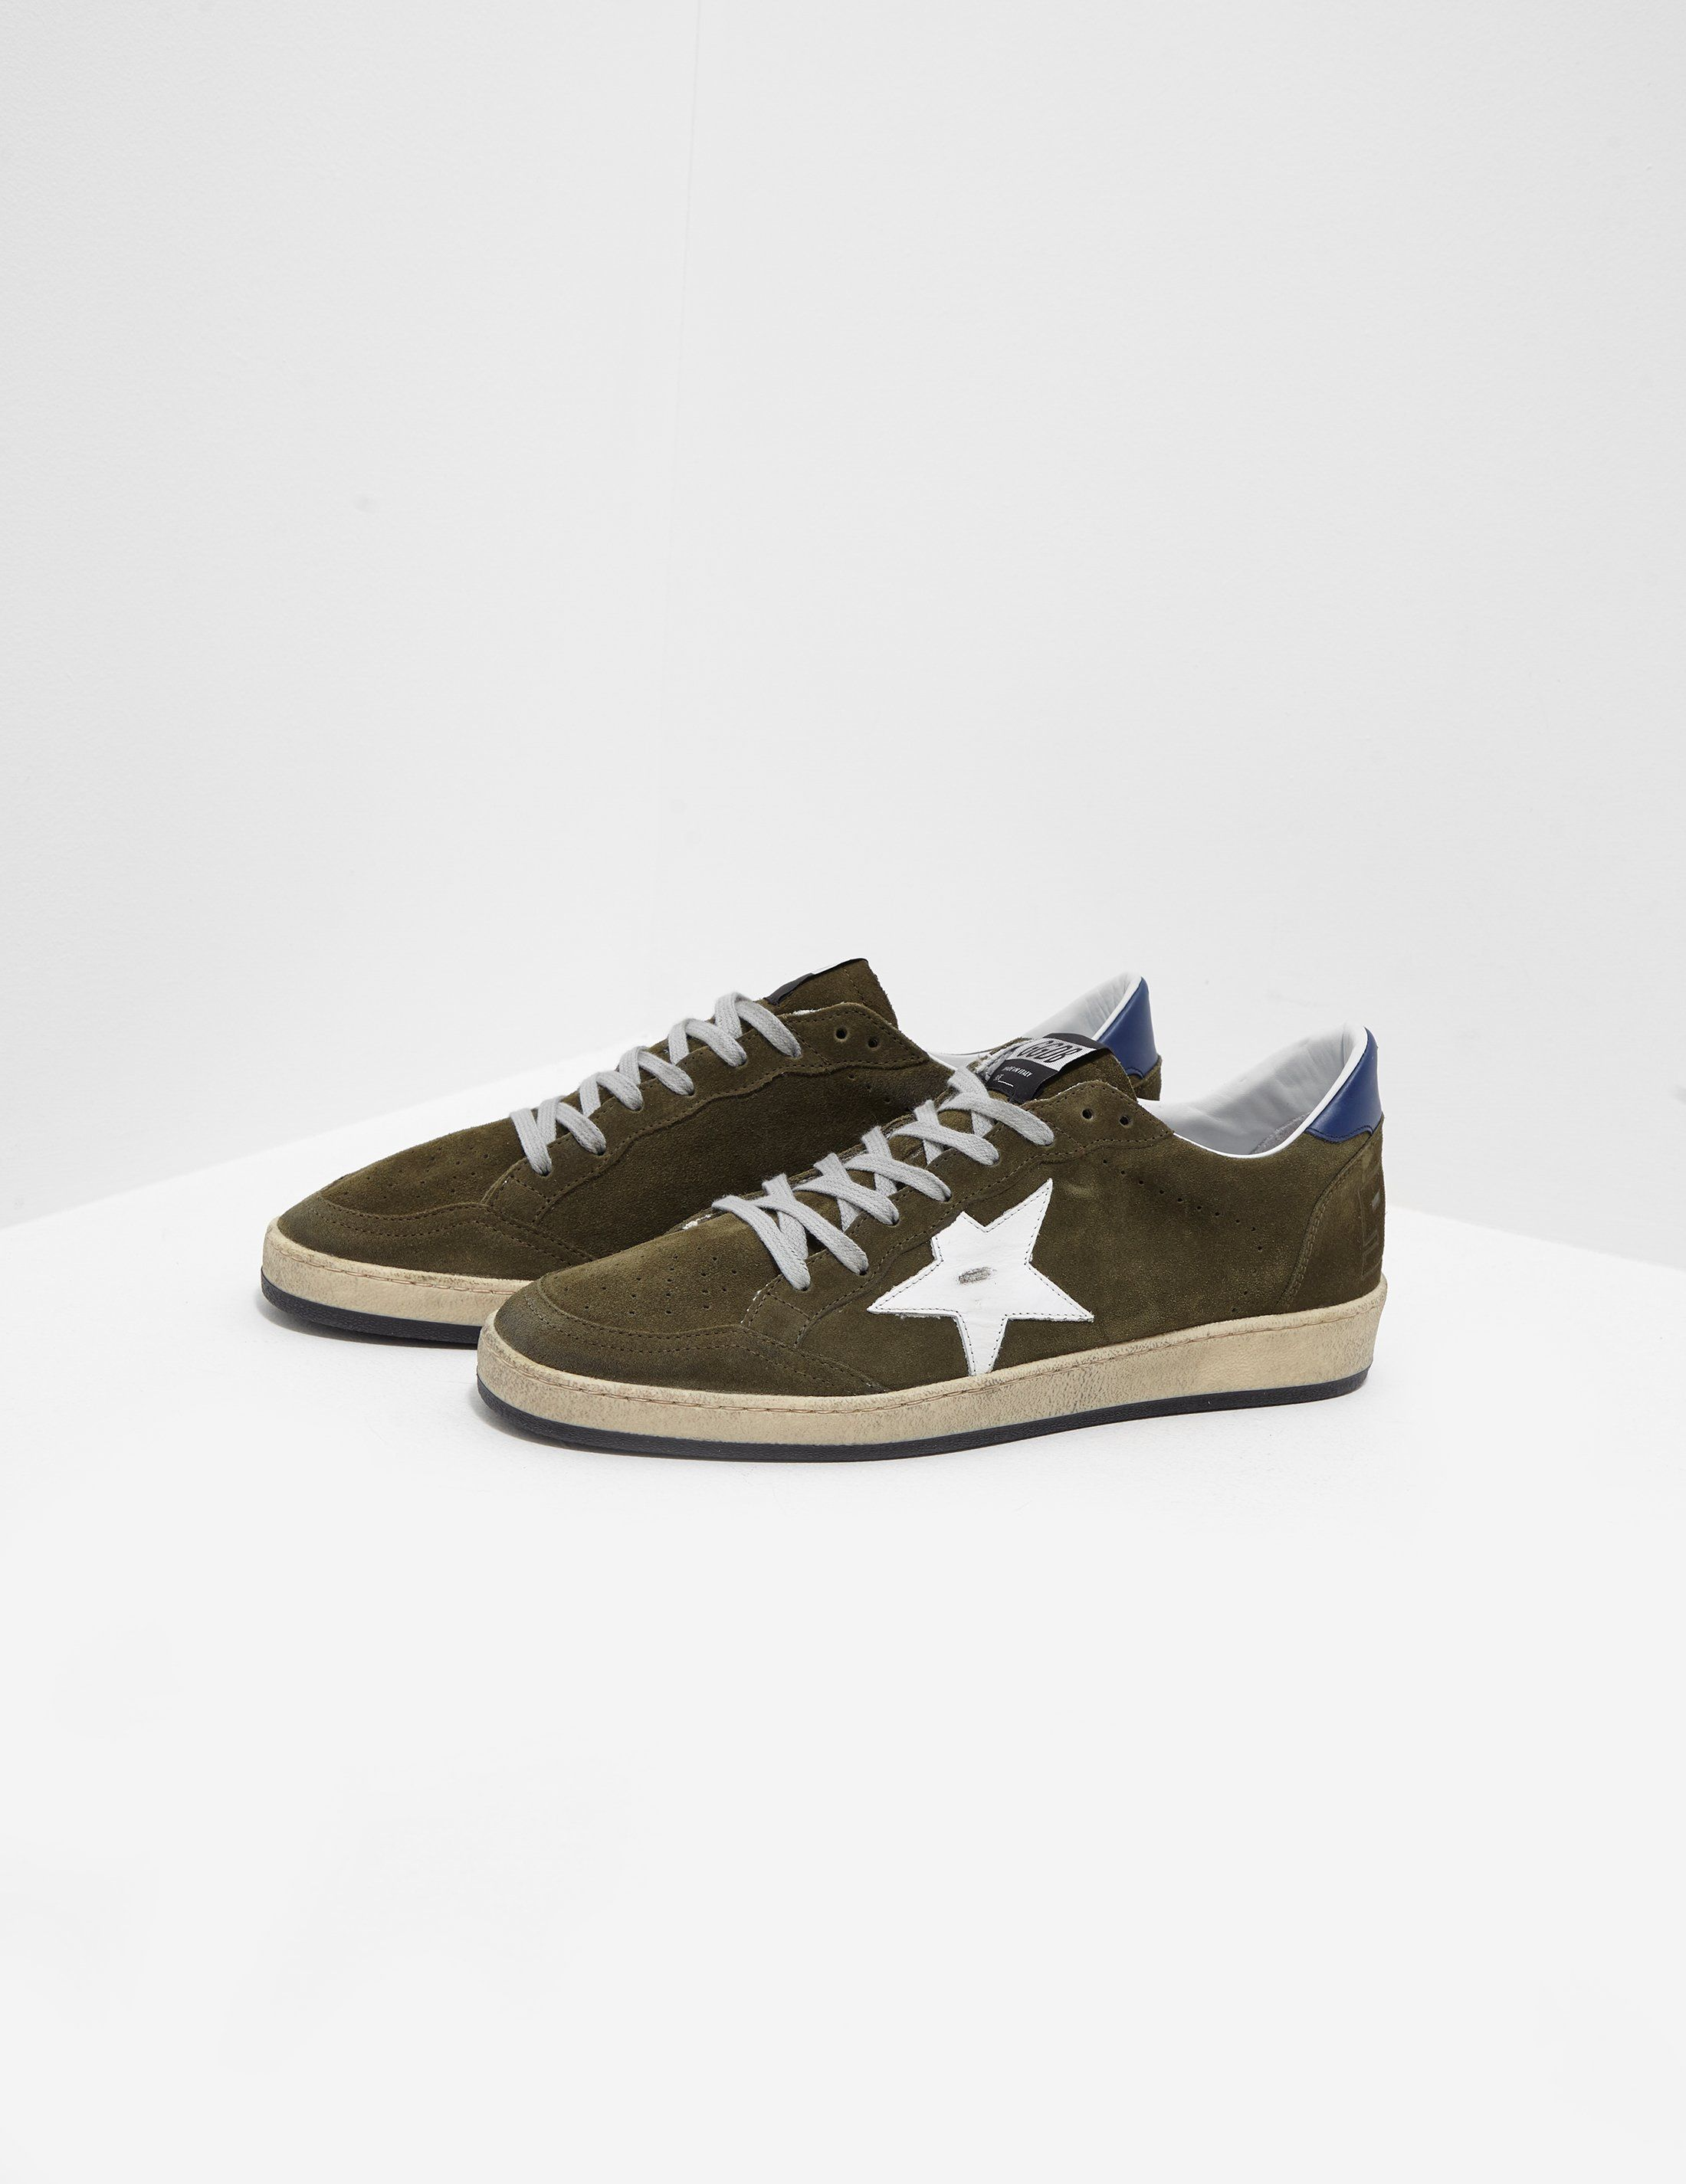 Golden Goose Deluxe Brand Ball Trainers